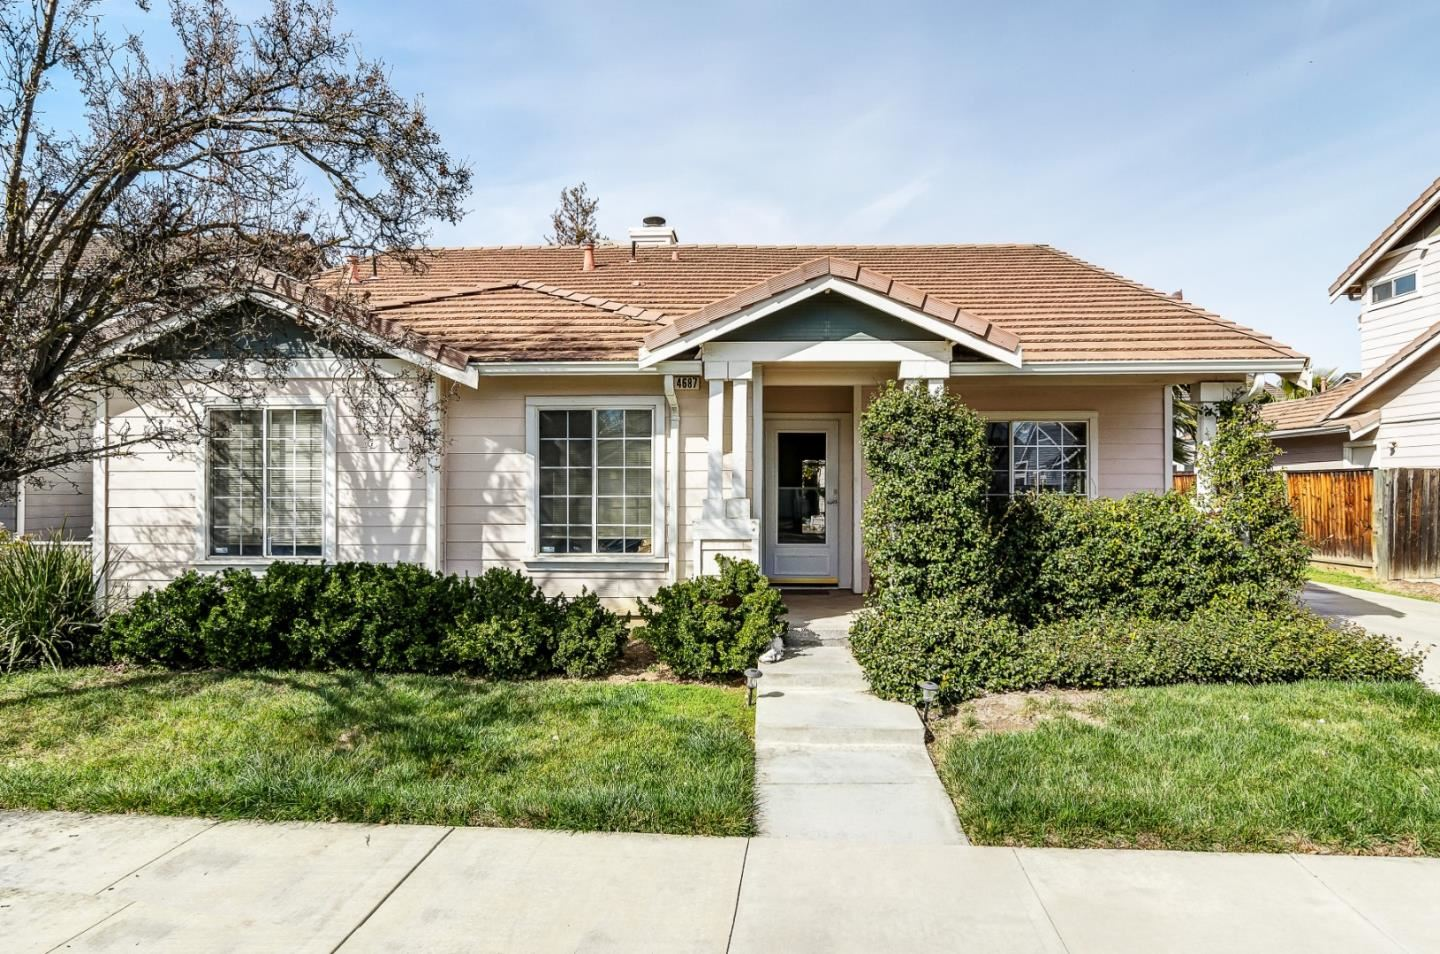 Photo for 4687 Ford ST, BRENTWOOD, CA 94513 (MLS # ML81831042)